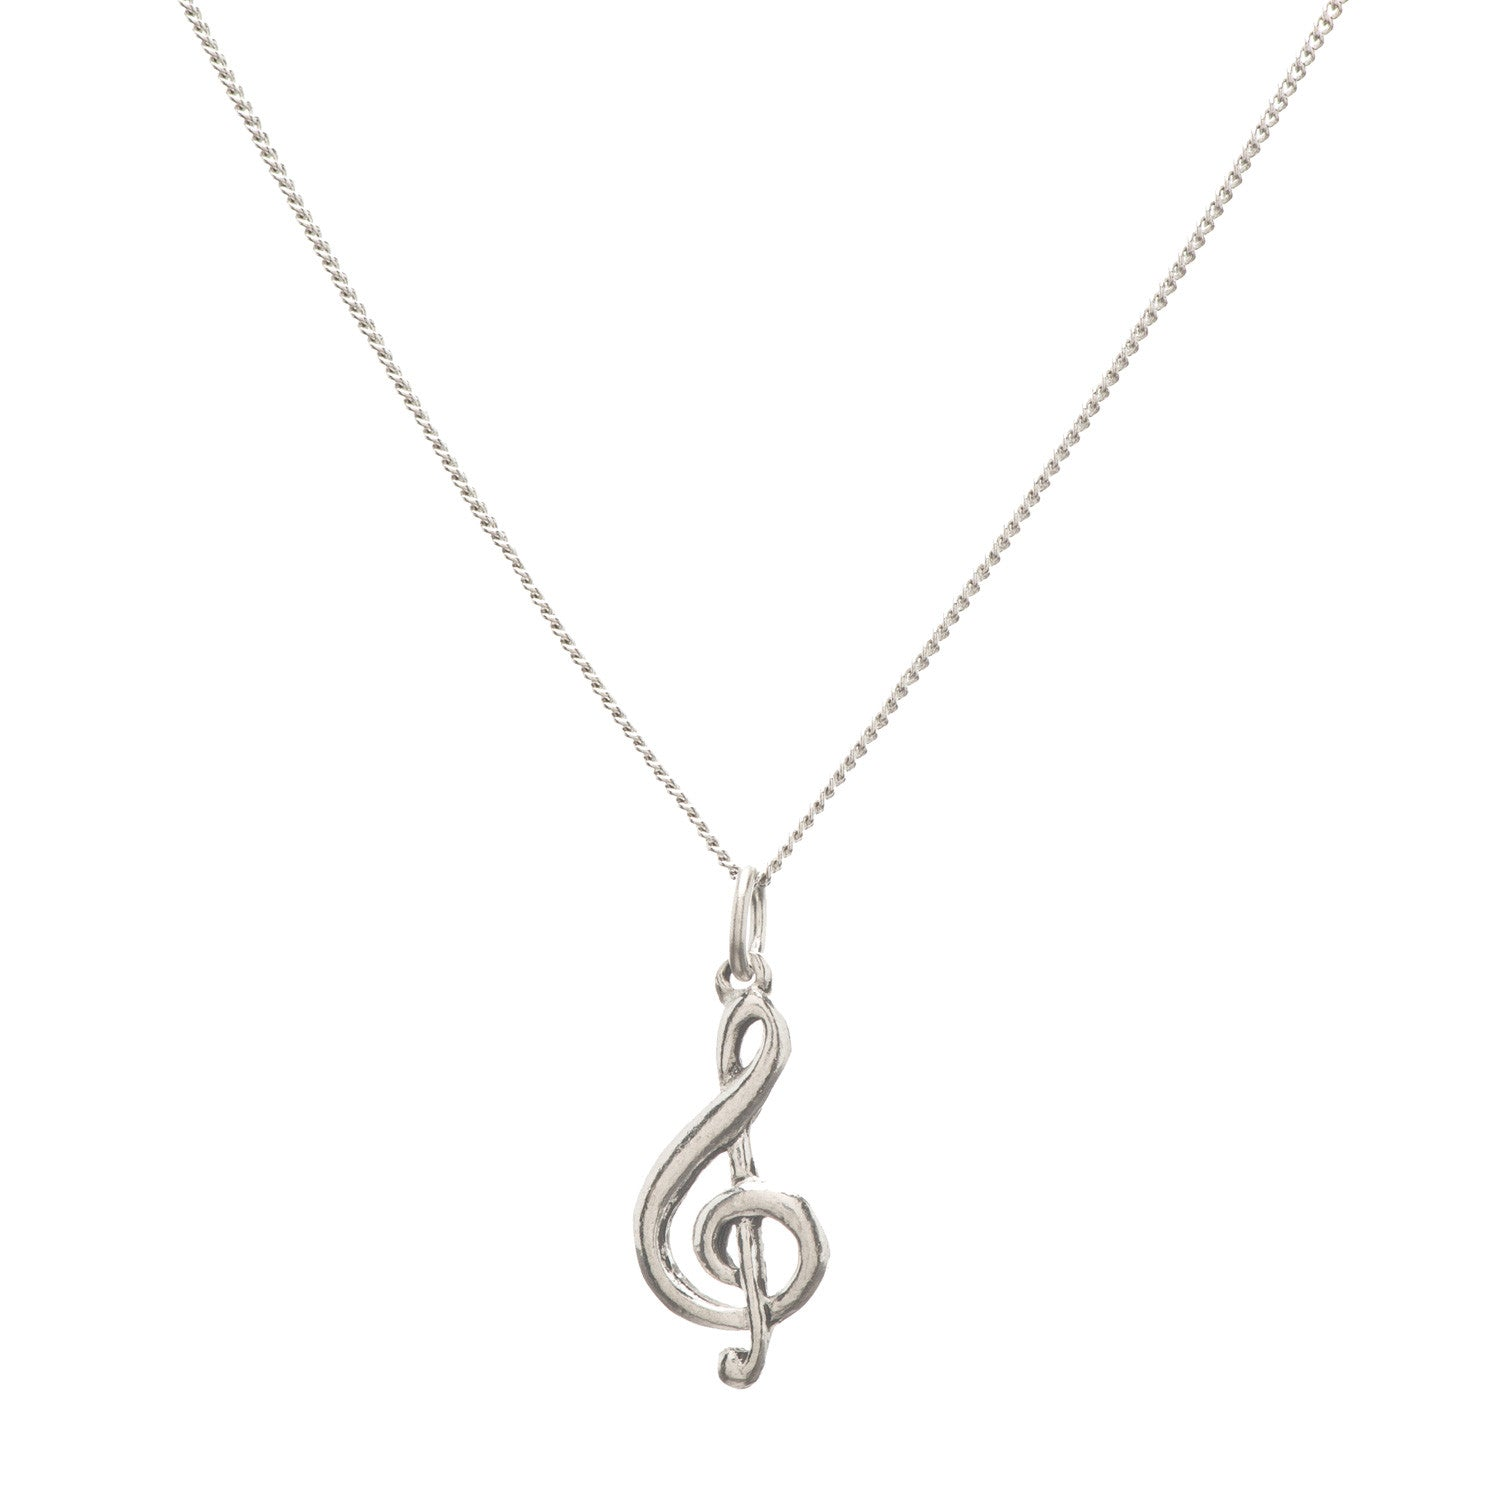 products necklace and clef music spinningdaisy note notes treble ottava collections various crystal pendant